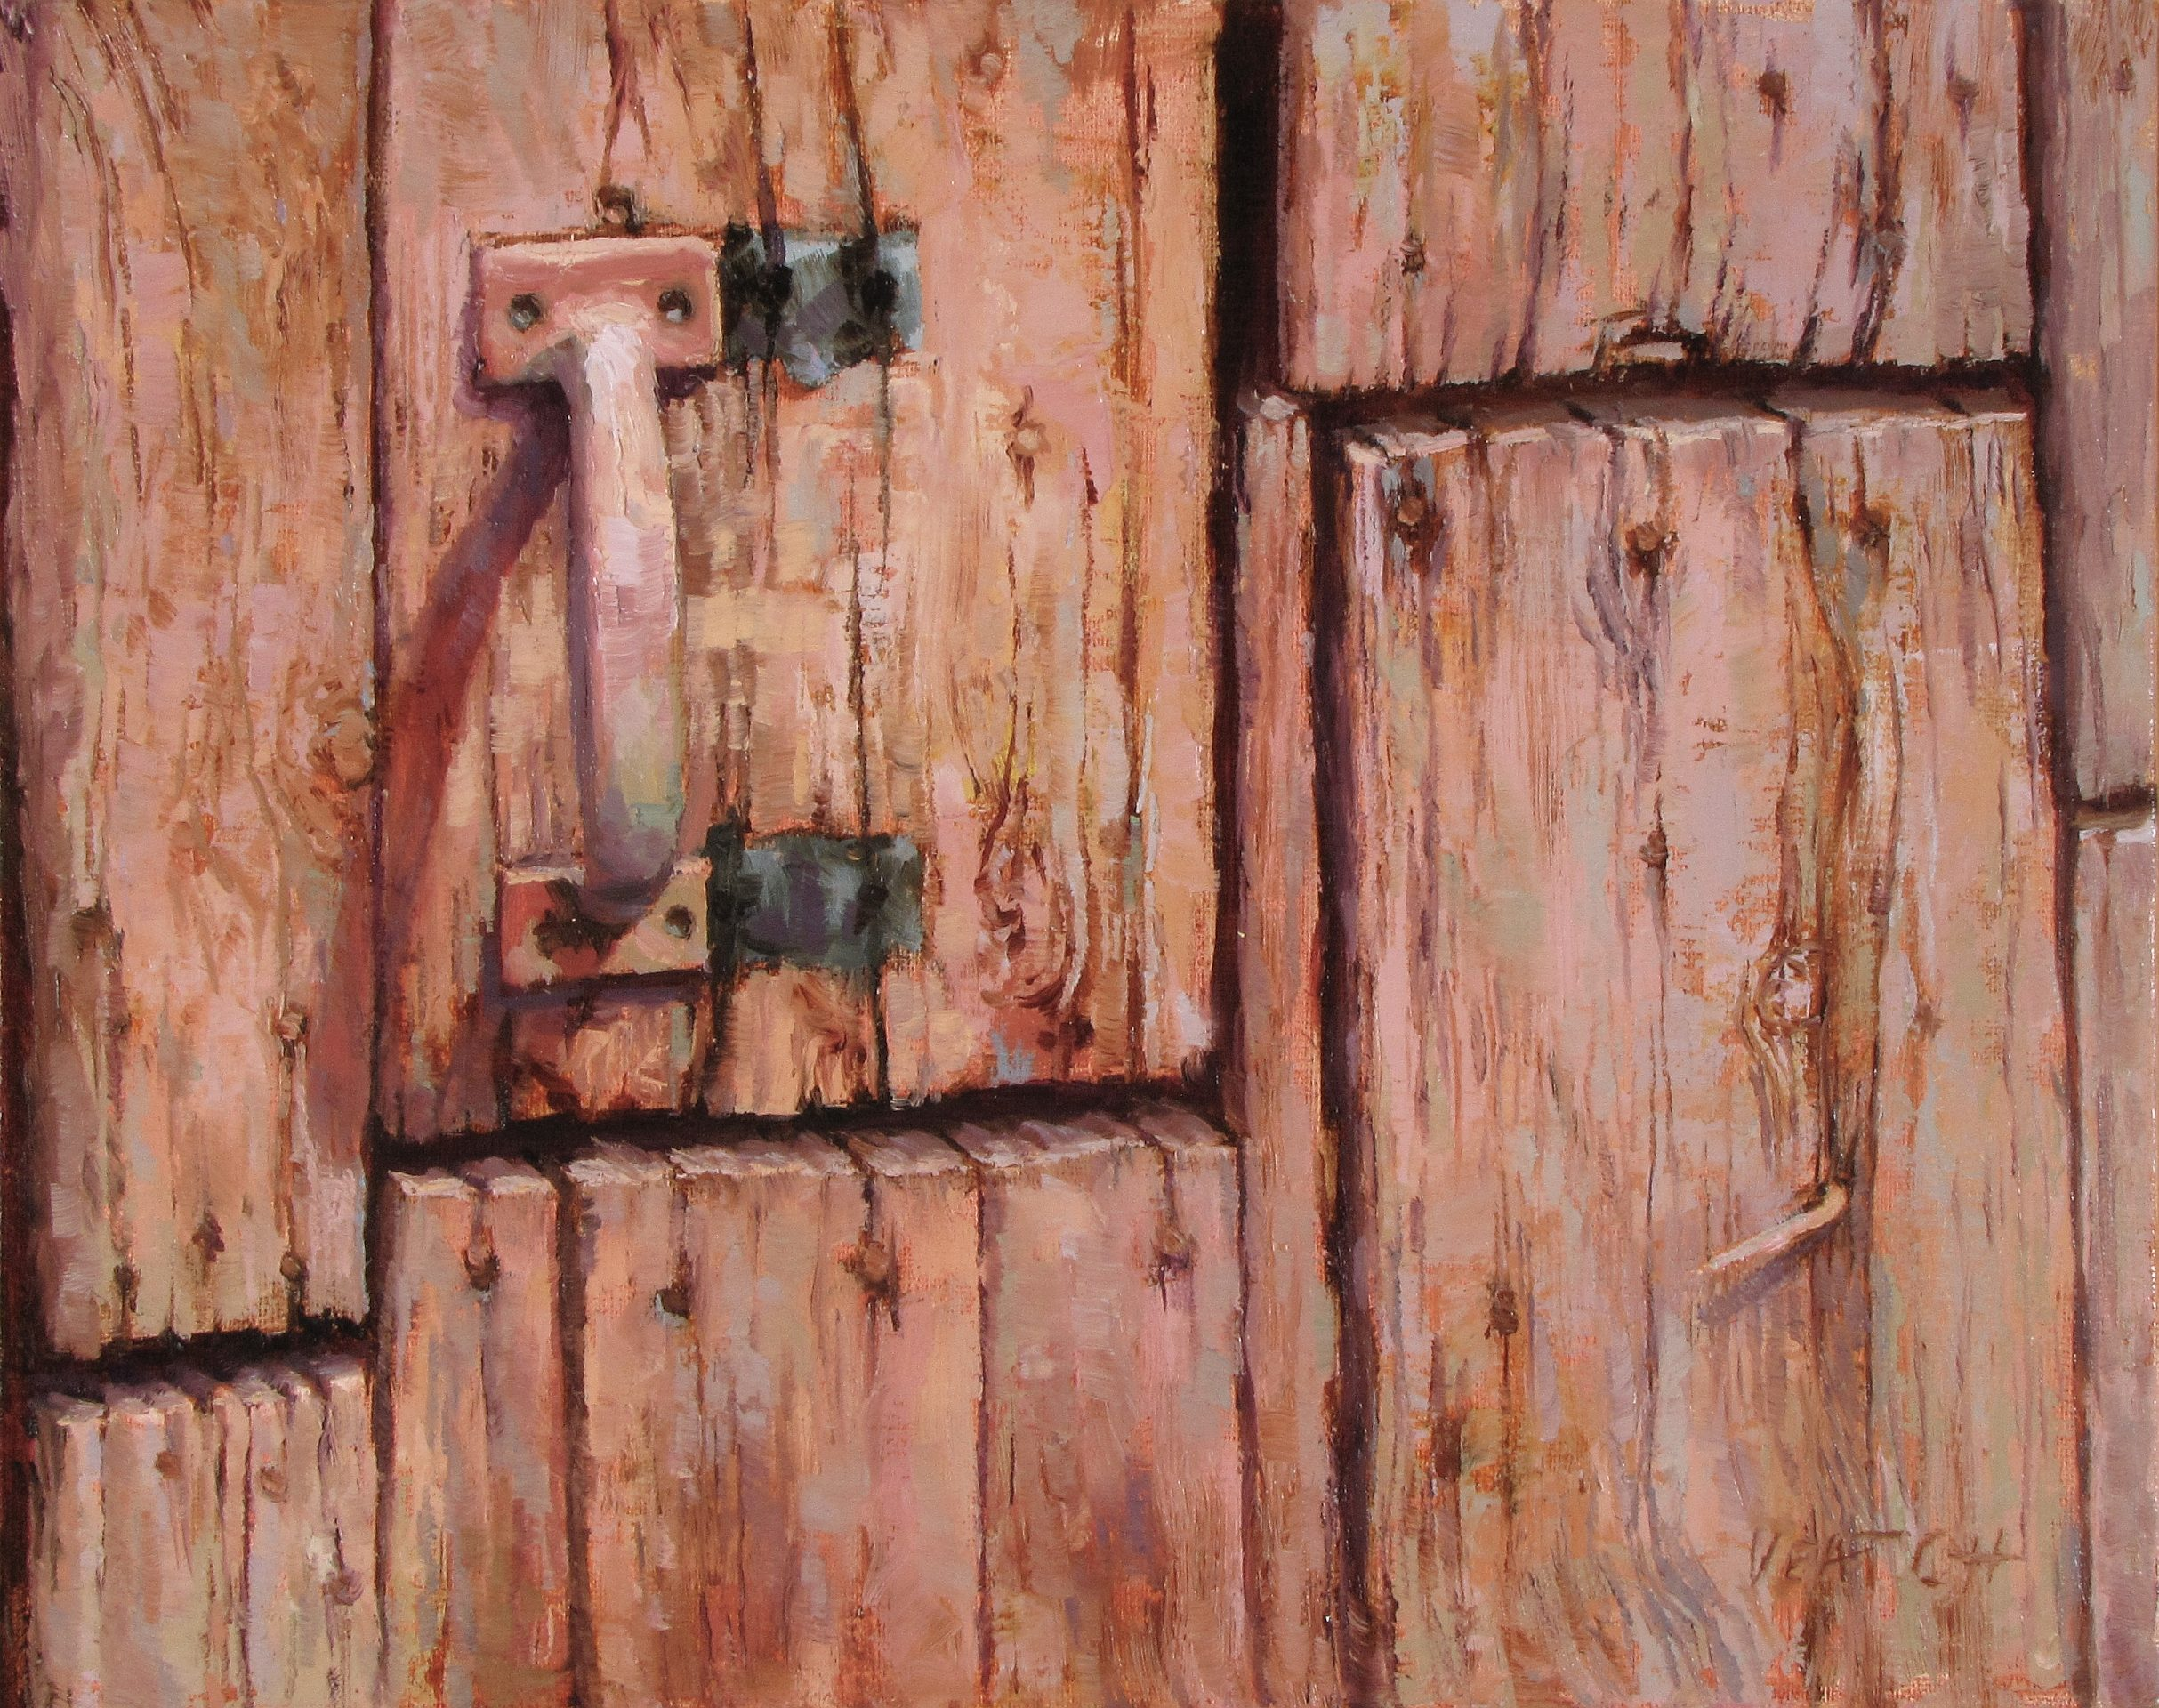 Veatch_Ghost of Barn Doors Past_oil_8x10